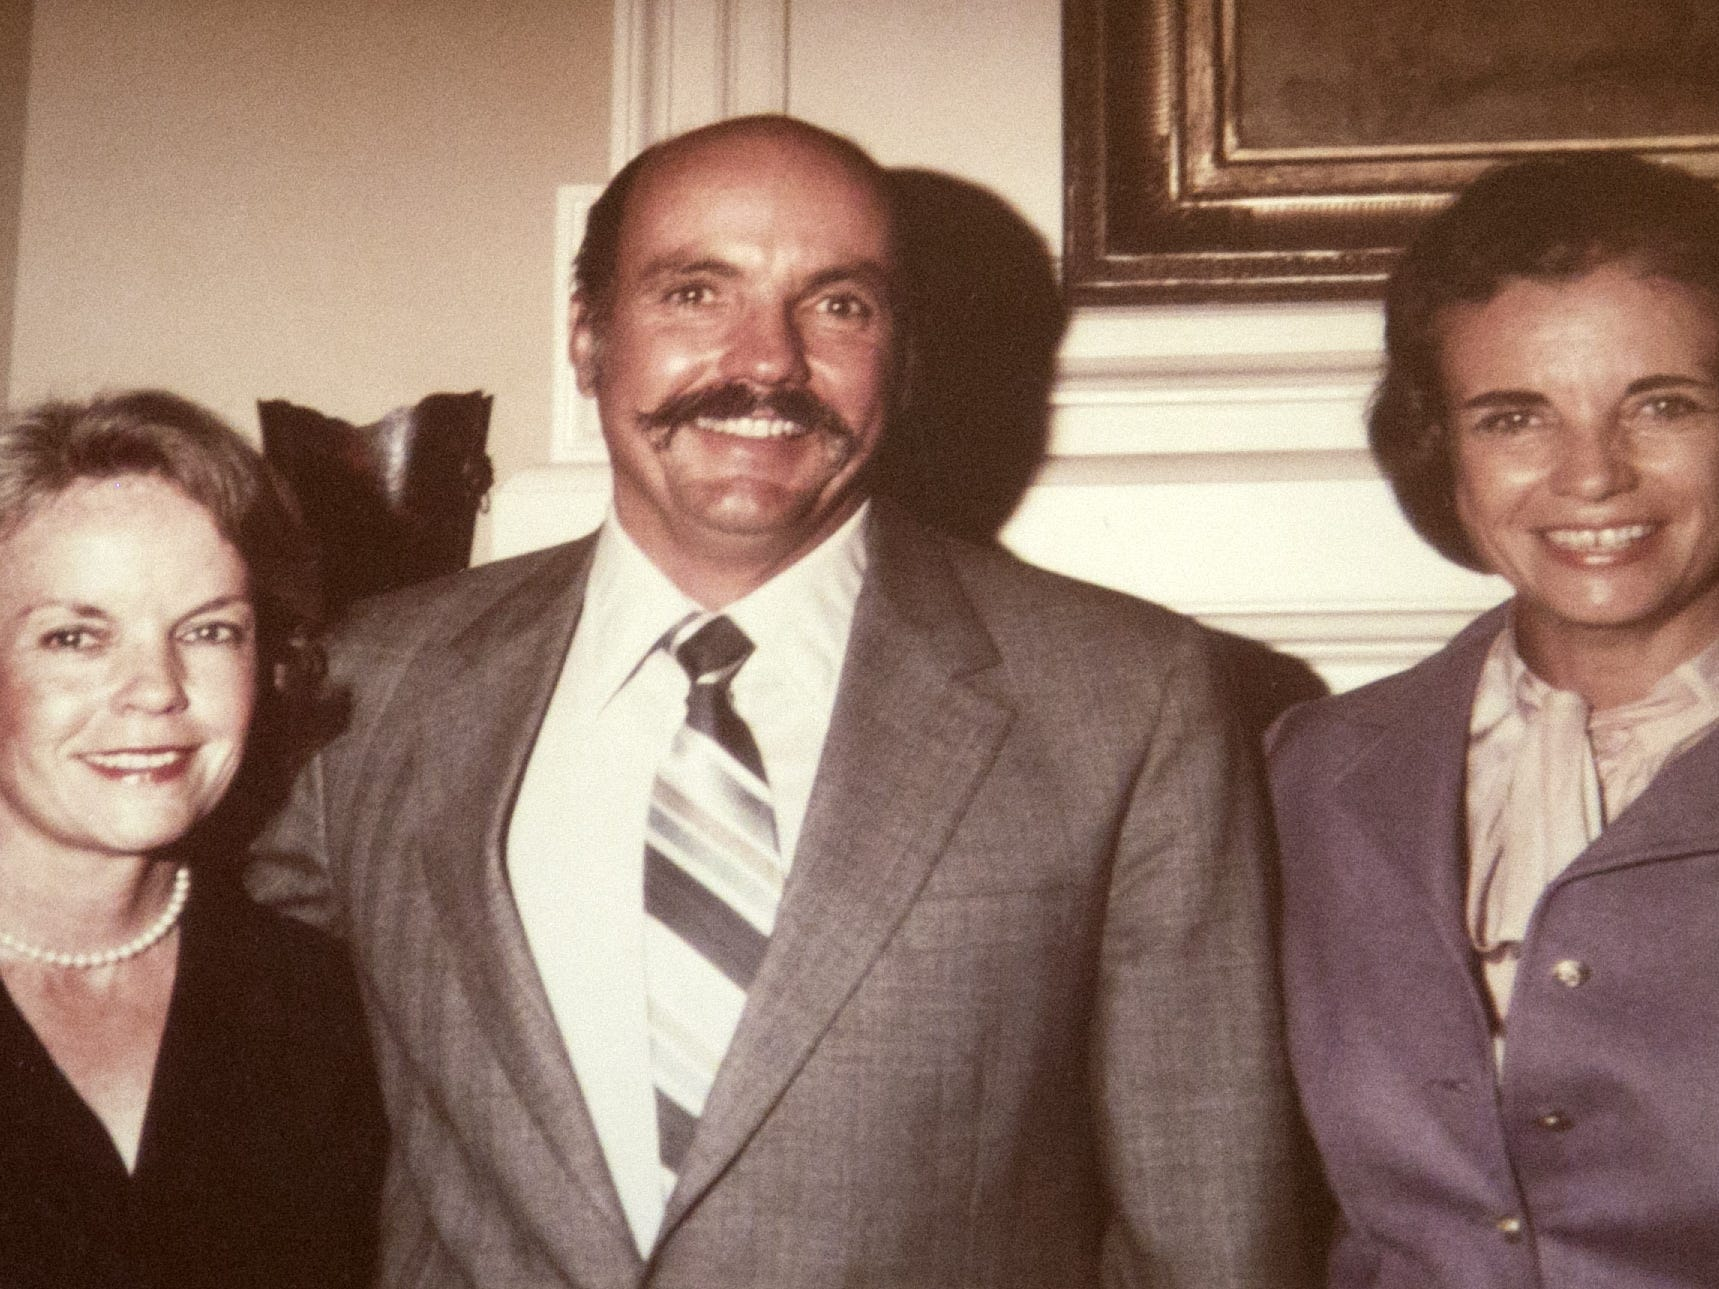 Sandra Day O'Connor (right) with her brother, Alan Day, and sister, Ann Day, when Sandra Day O'Connor was nominated to the Supreme Court in 1981.